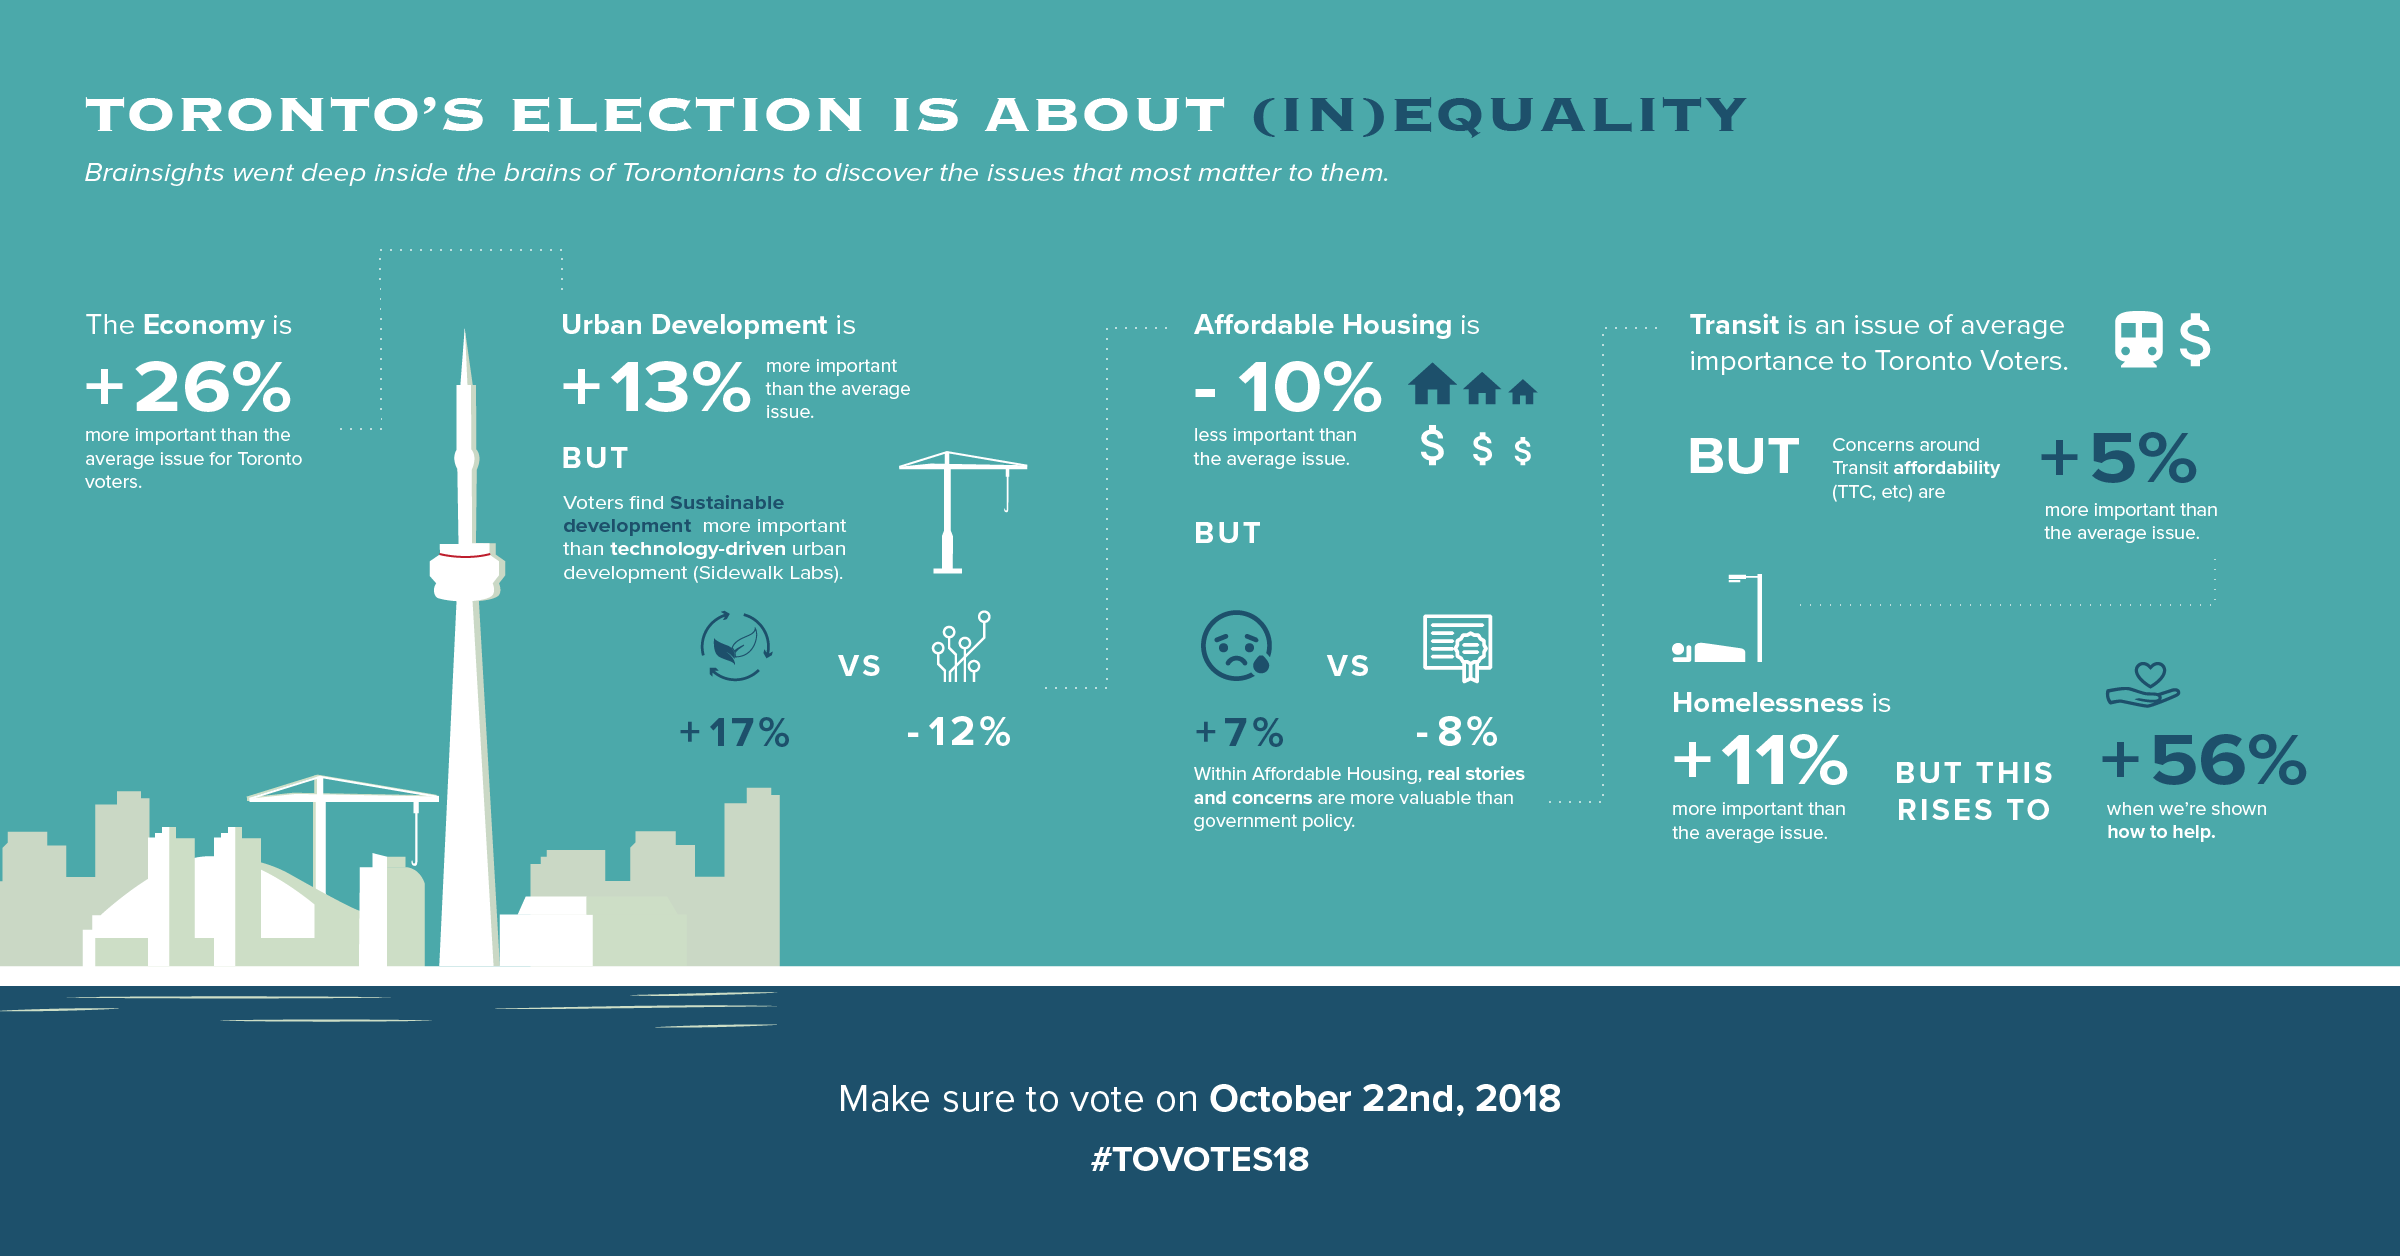 Analyzing the unconscious biases of Toronto voters (October, 2018)